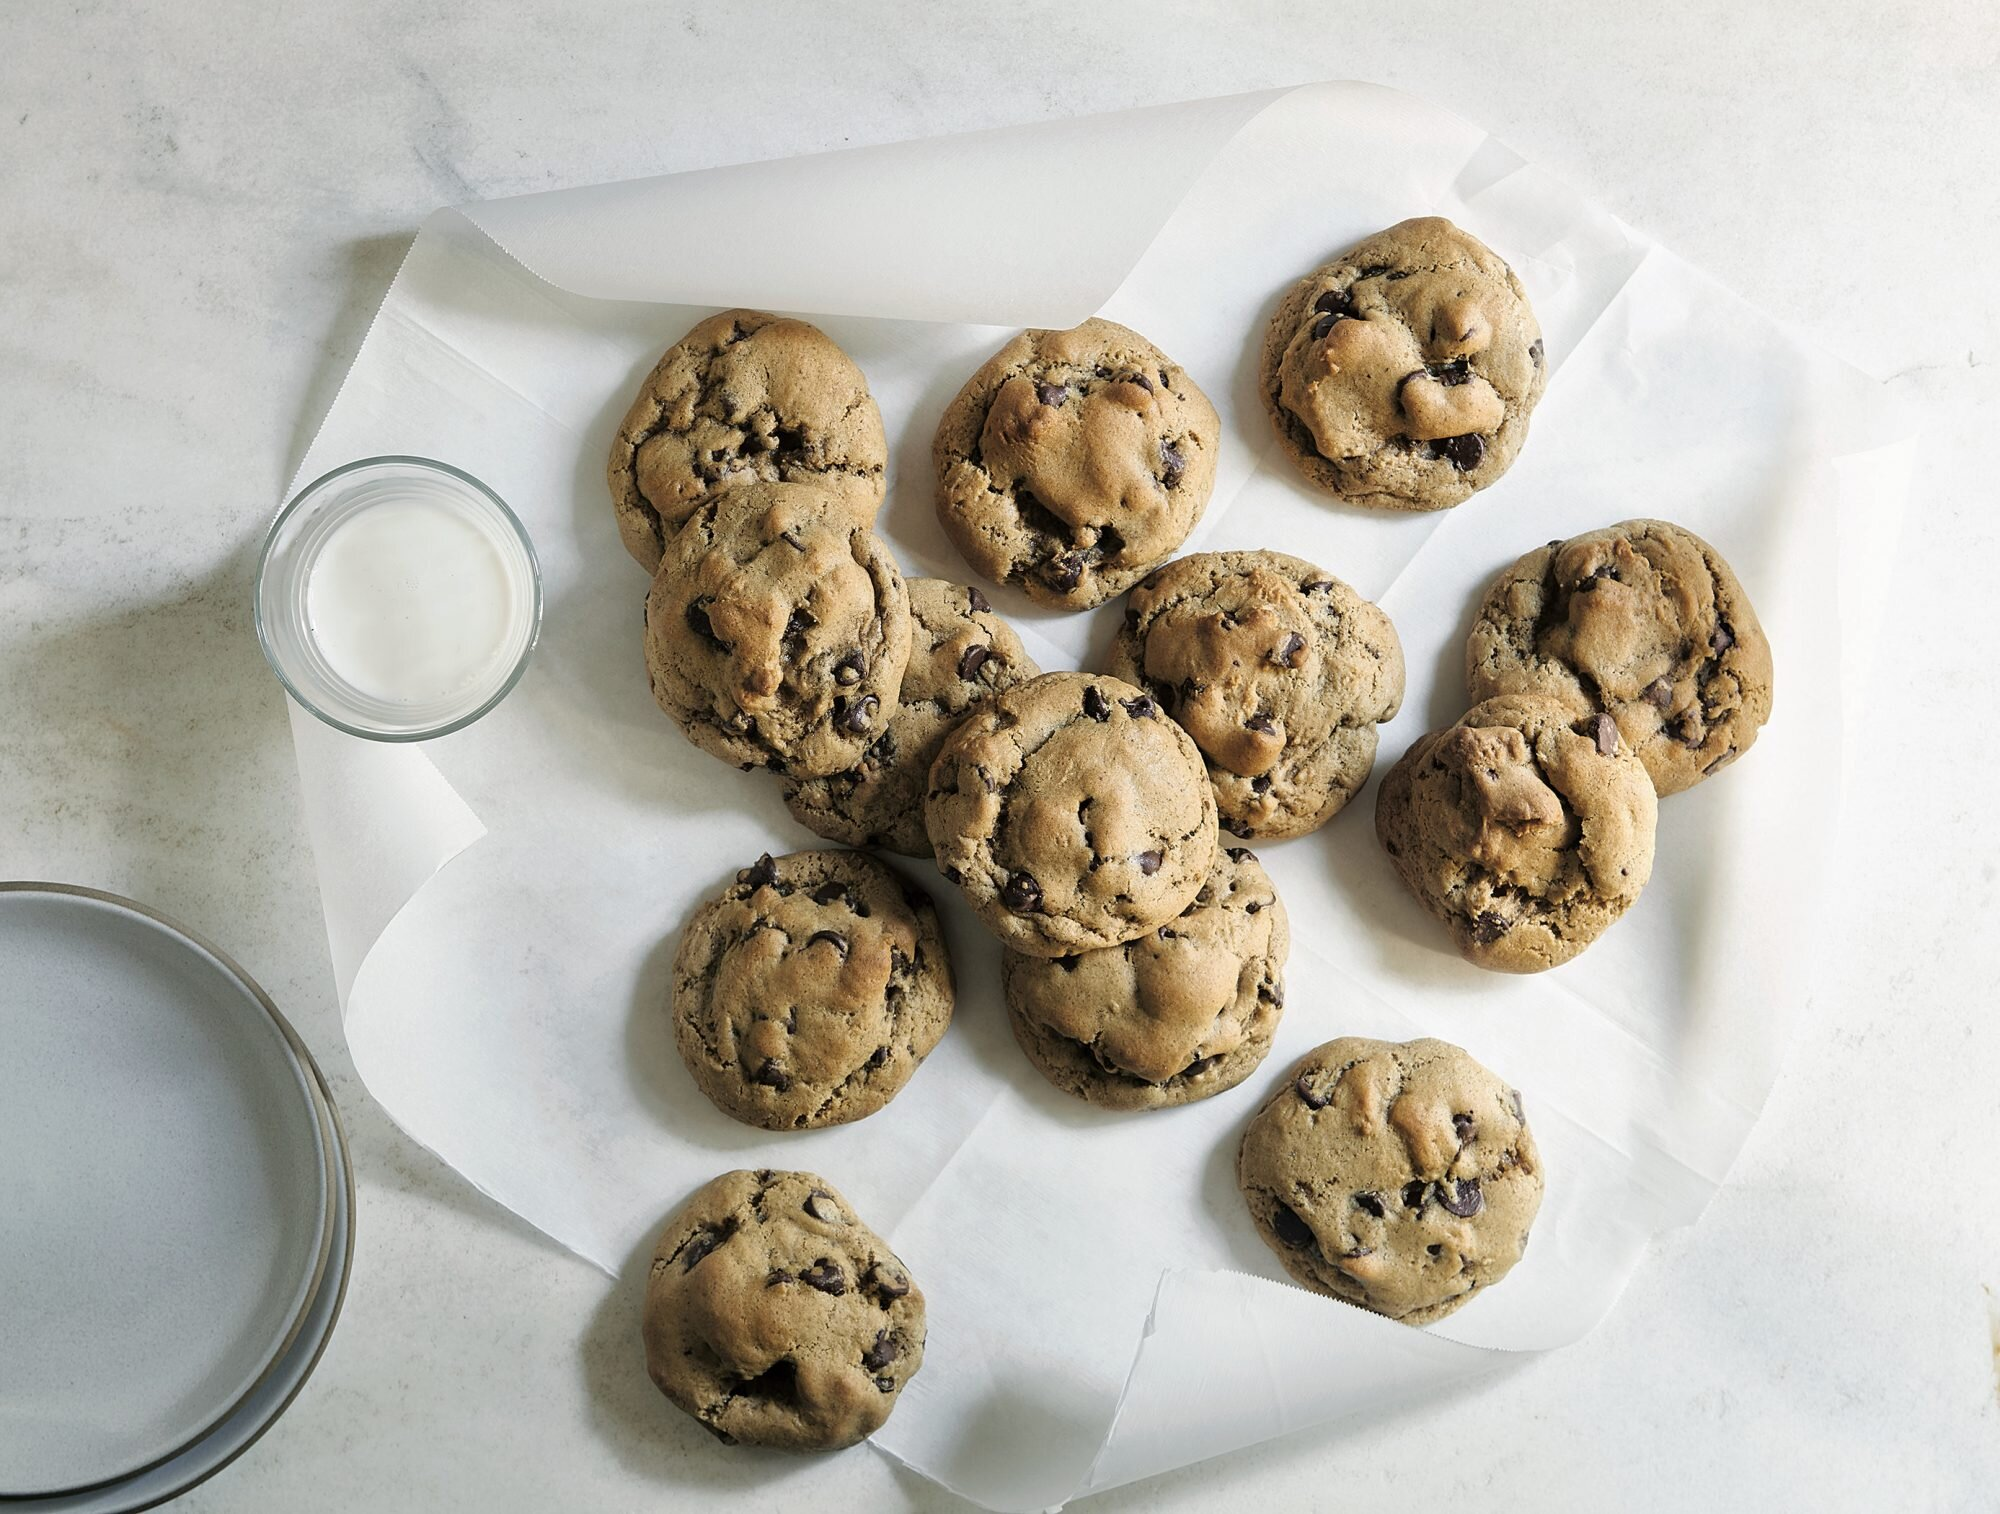 Joanna Gaines Chocolate Chip Cookies Recipe Southern Living